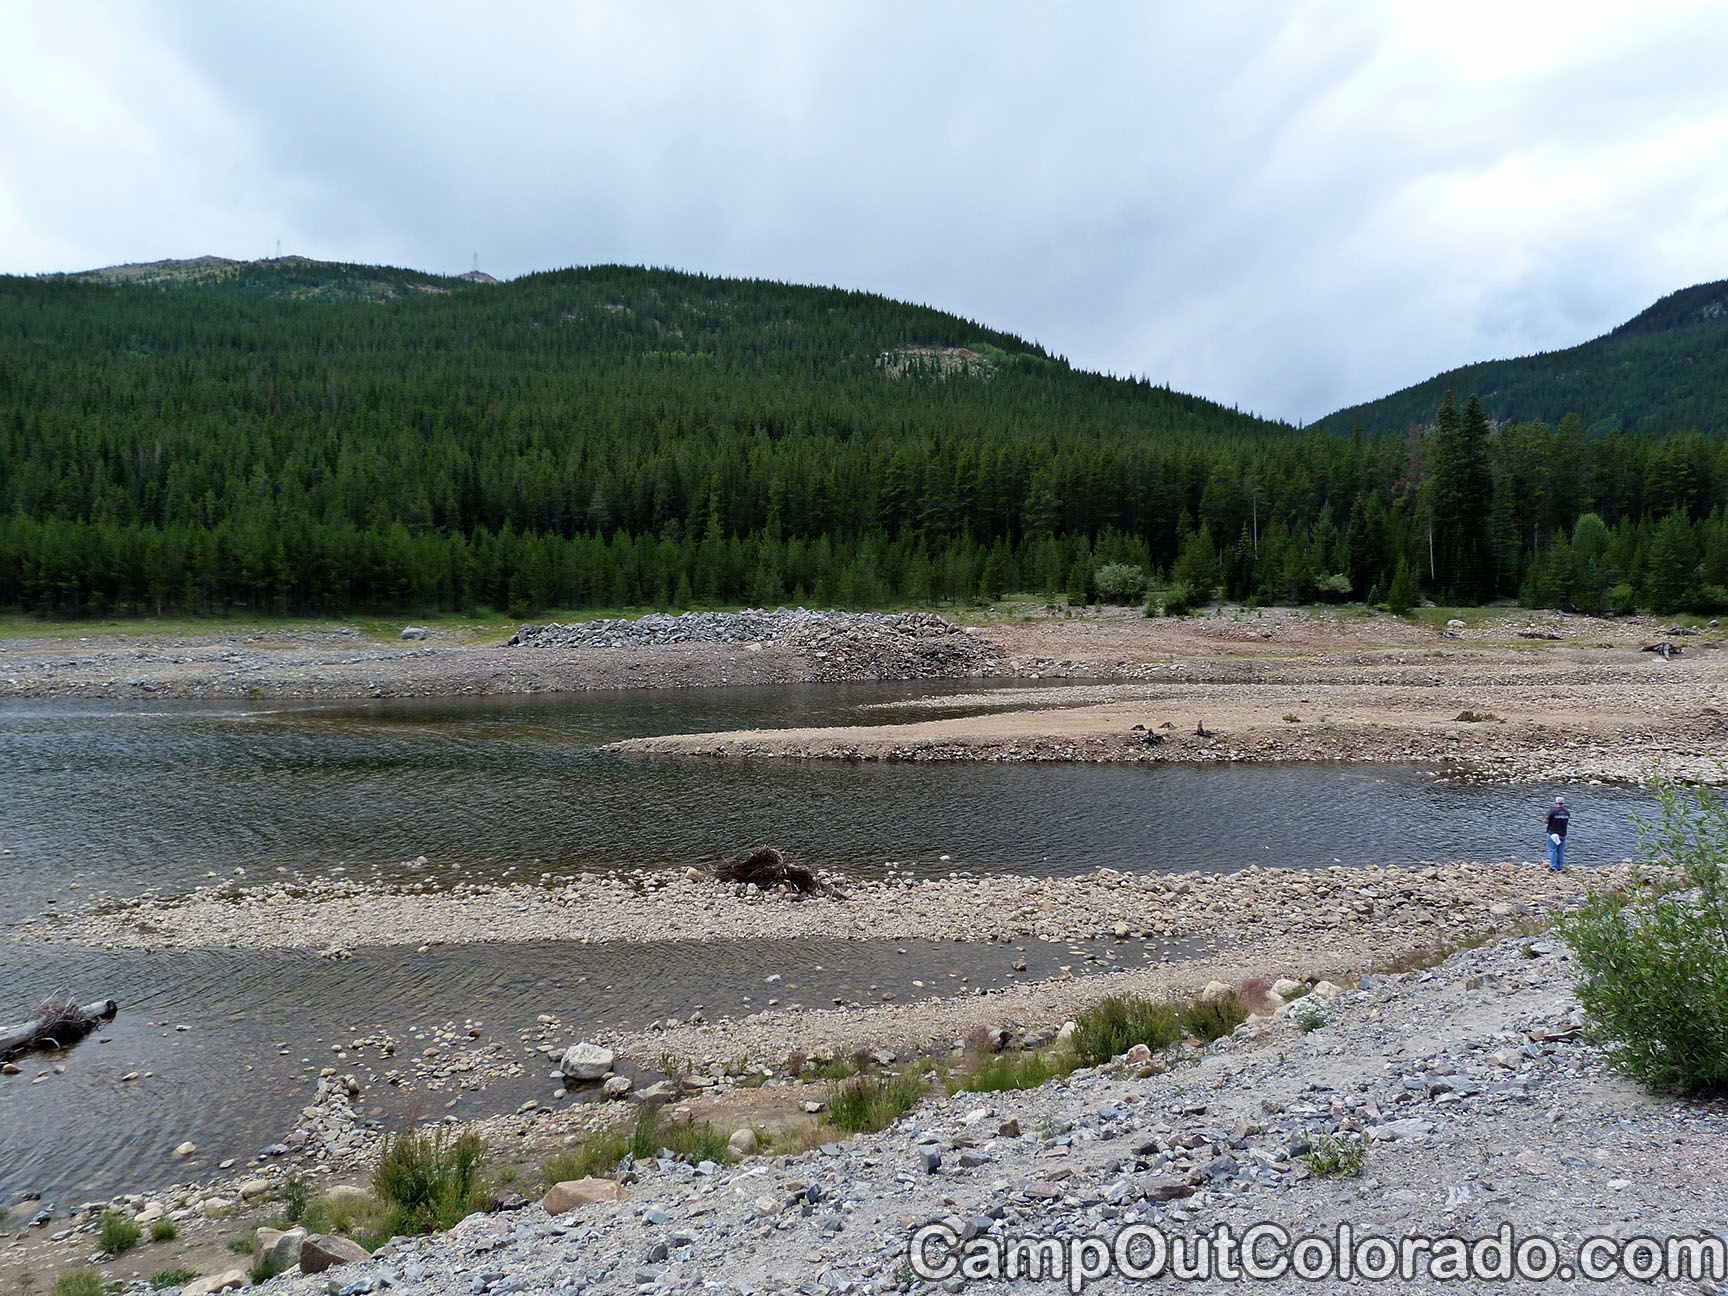 Camp-out-colorado-turquoise-lake-low-water